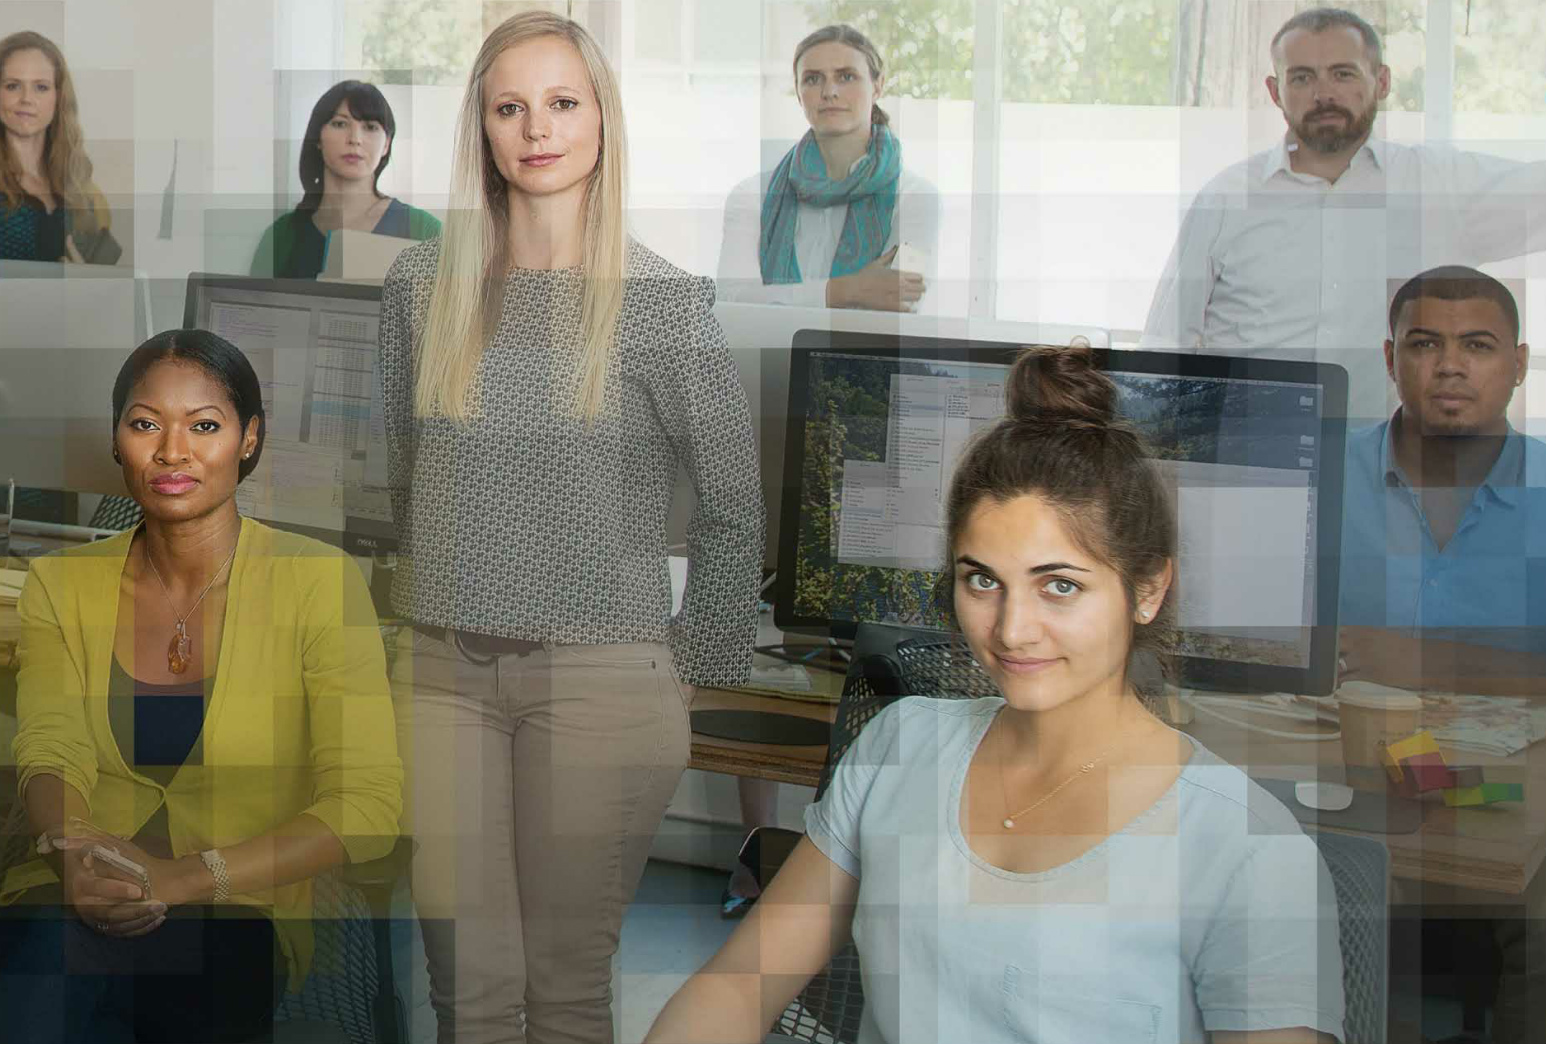 Photomosaic of people in an office